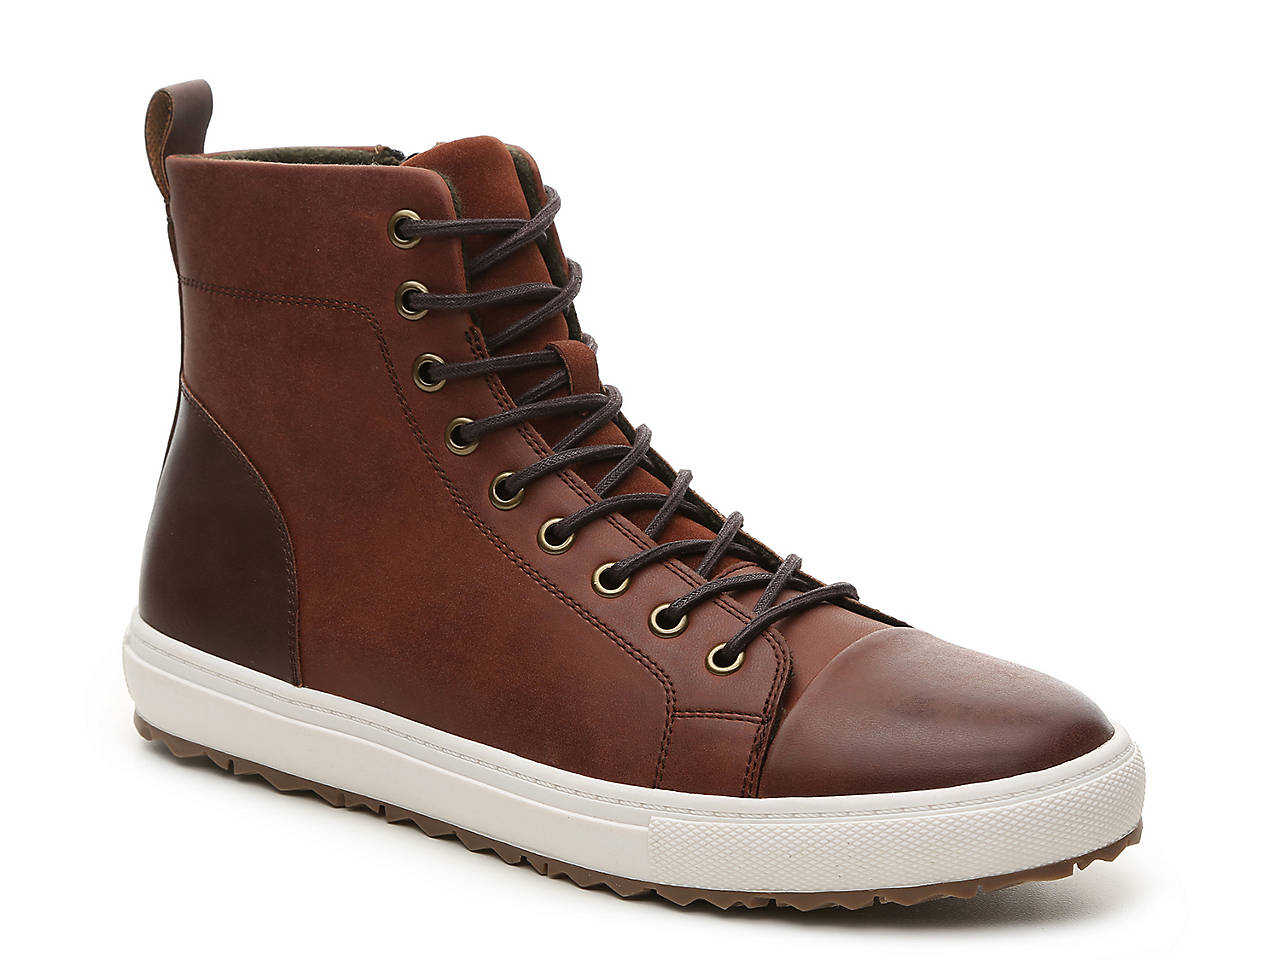 834f071e9c1 Cogruzzo High-Top Sneaker Boot